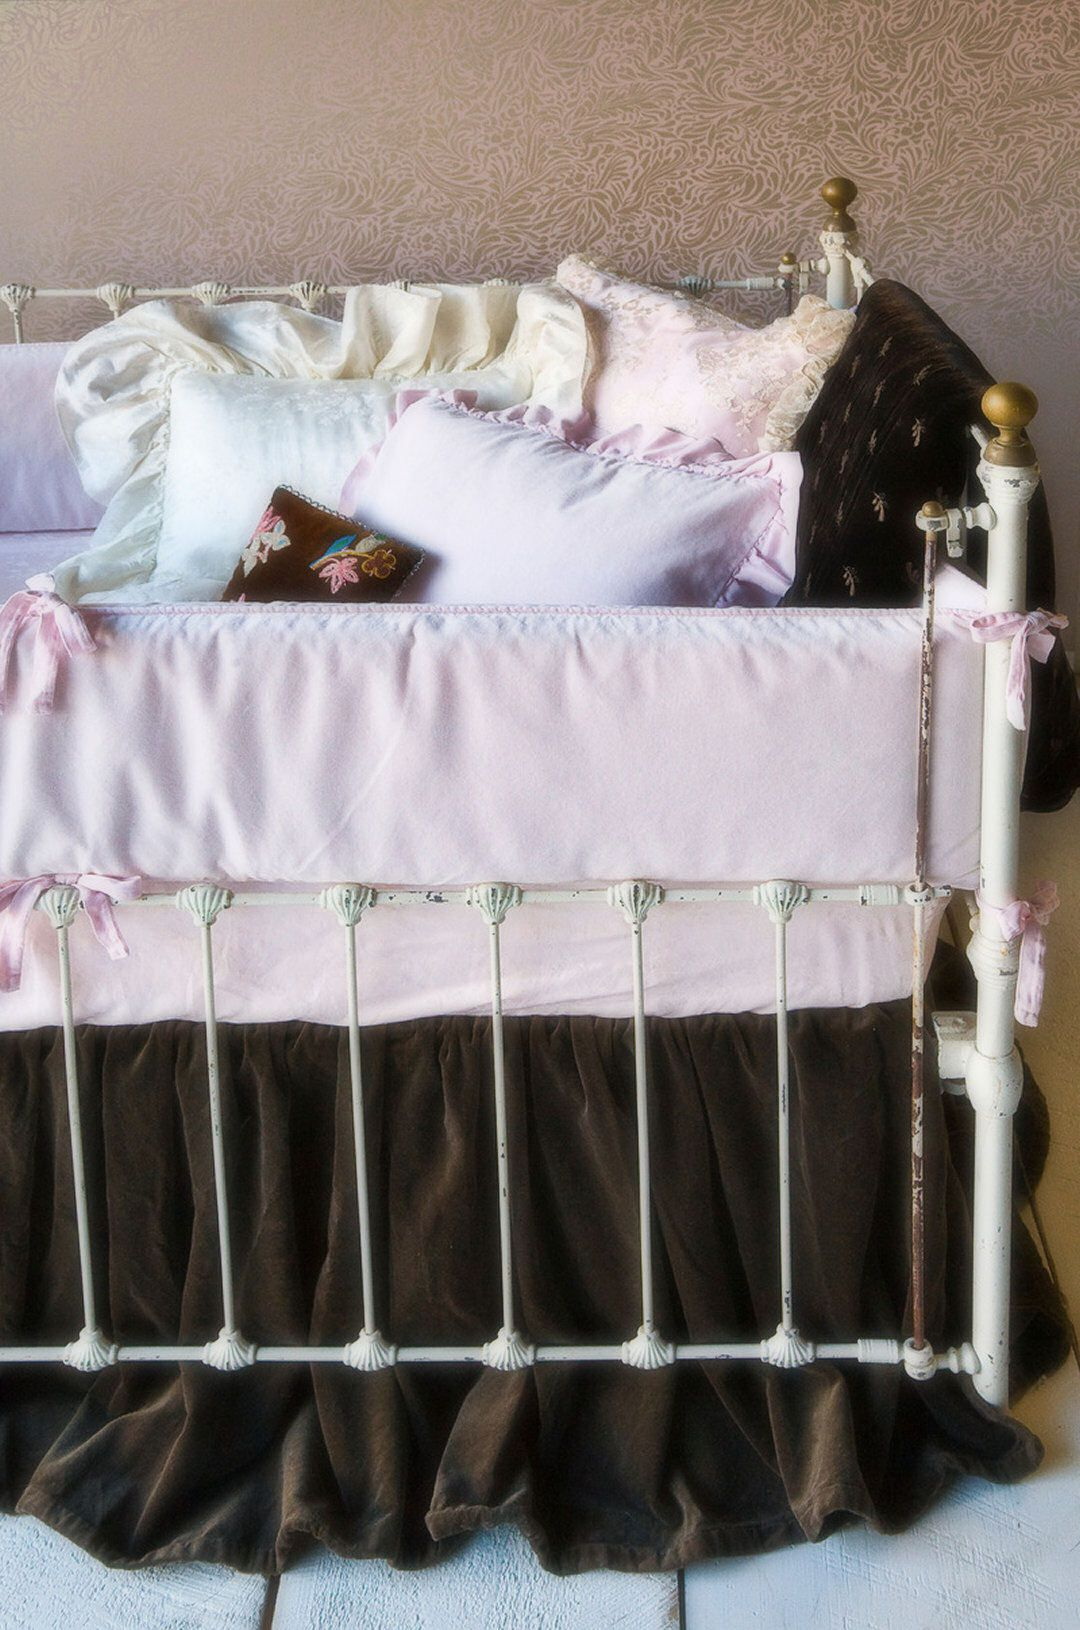 pin by trish anderson on grand baby pinterest bed linen and linens